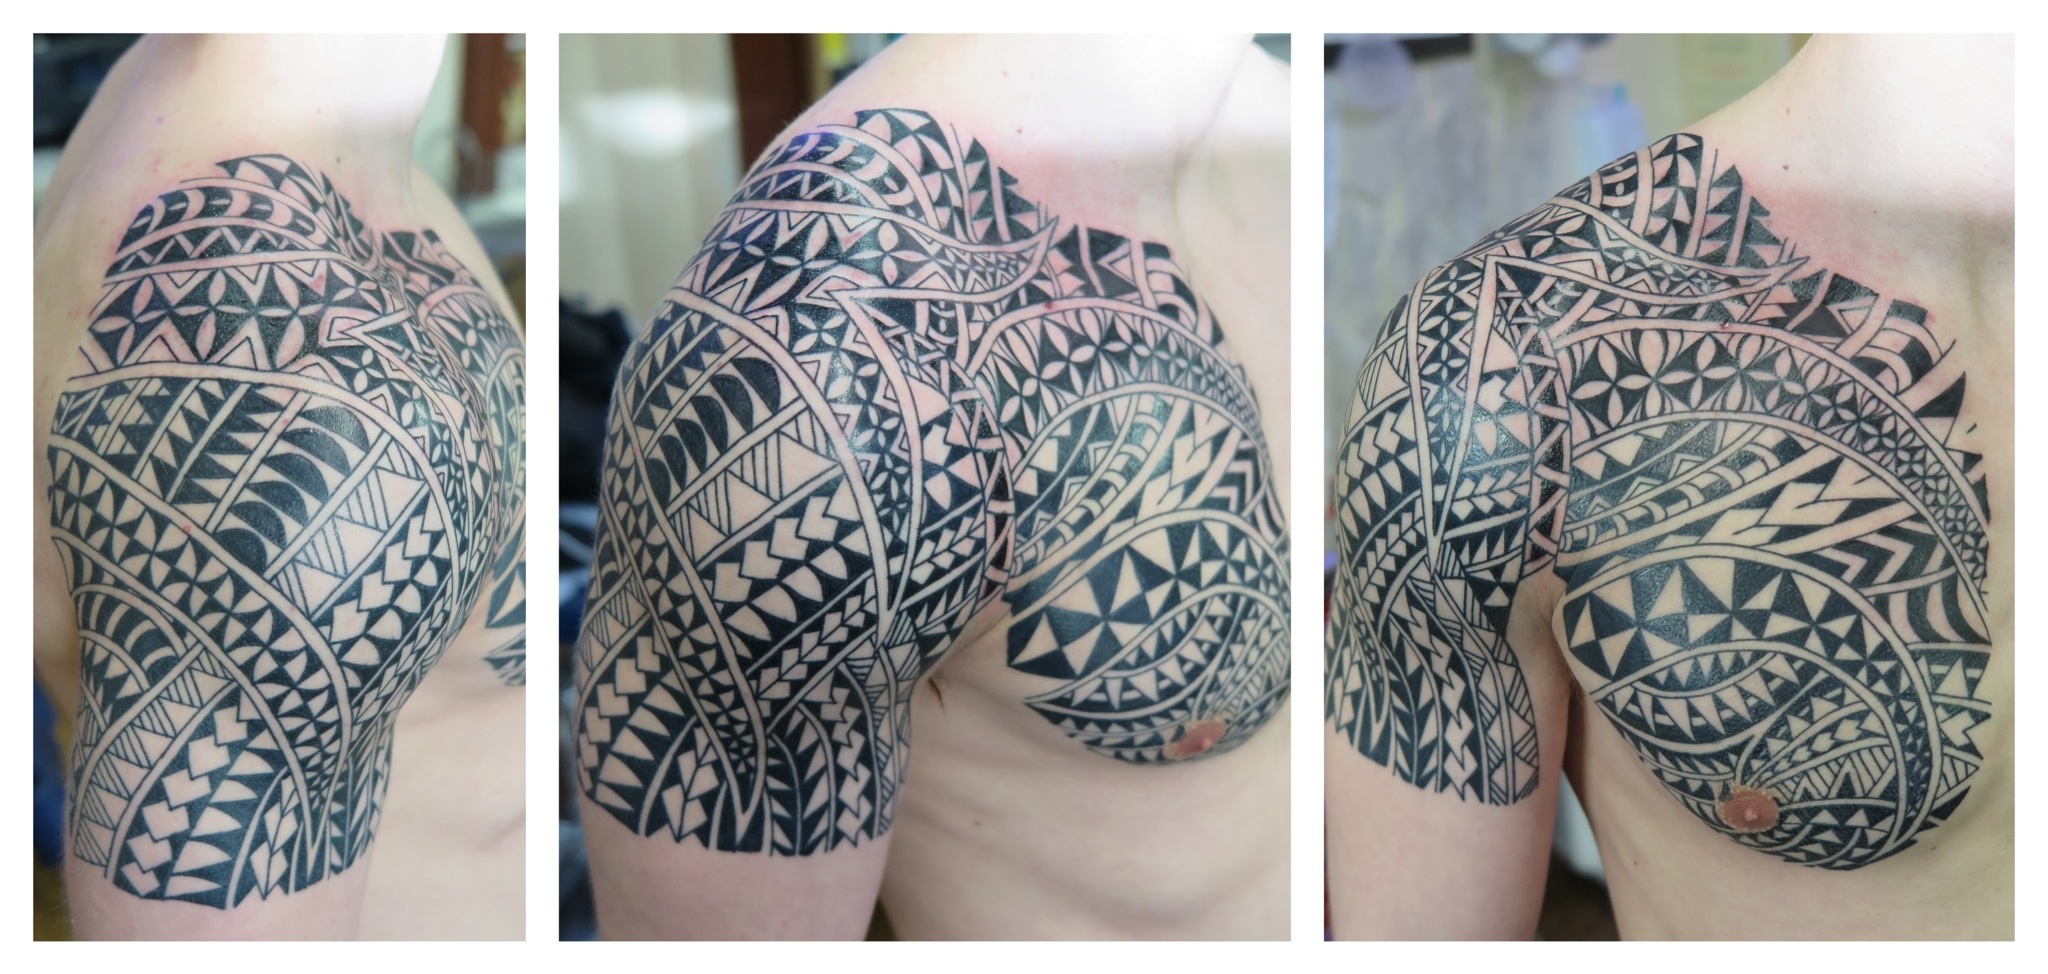 Maori Irish St Tattoo